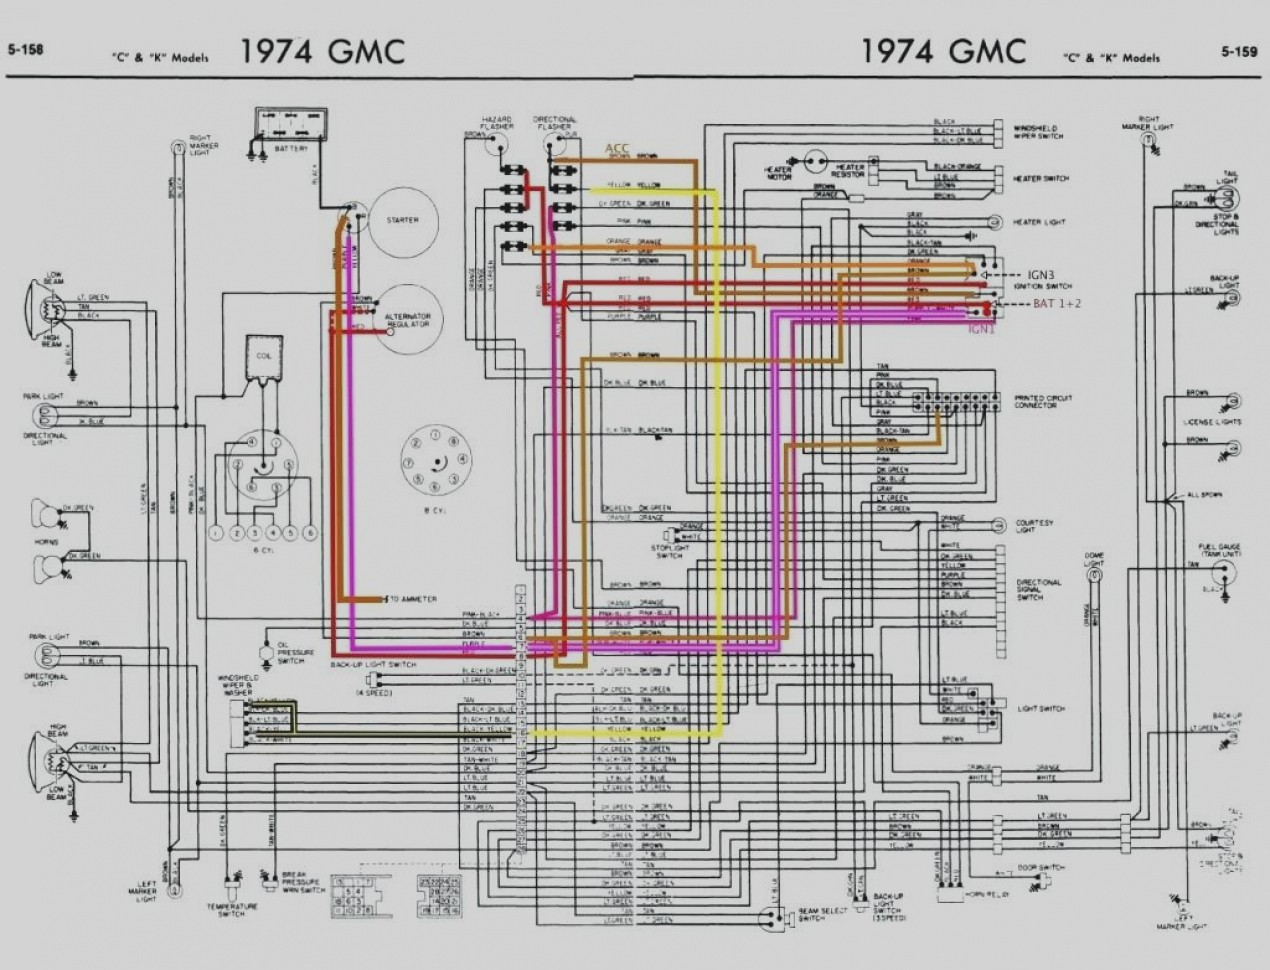 hight resolution of 1977 chevy wiring diagram free picture schematic wiring diagrams pm1977 chevy wiring diagram free picture schematic